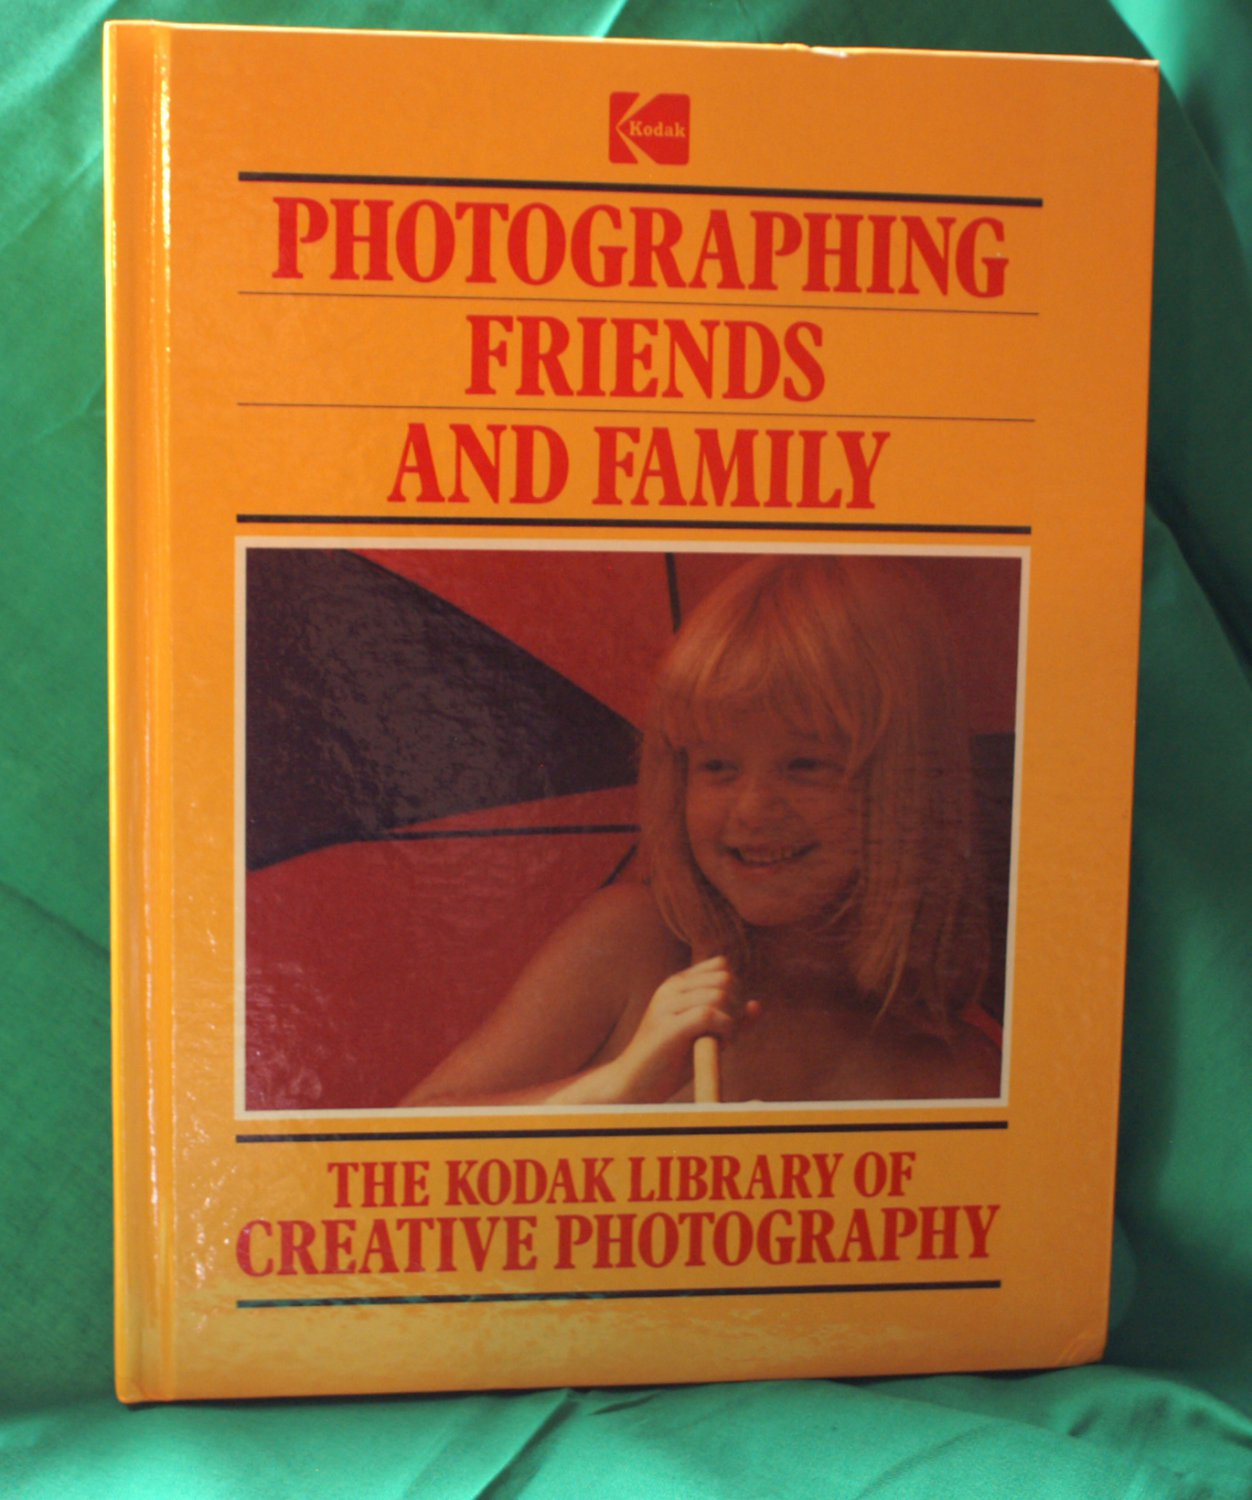 Kodak Photographing Friends And Family Like New